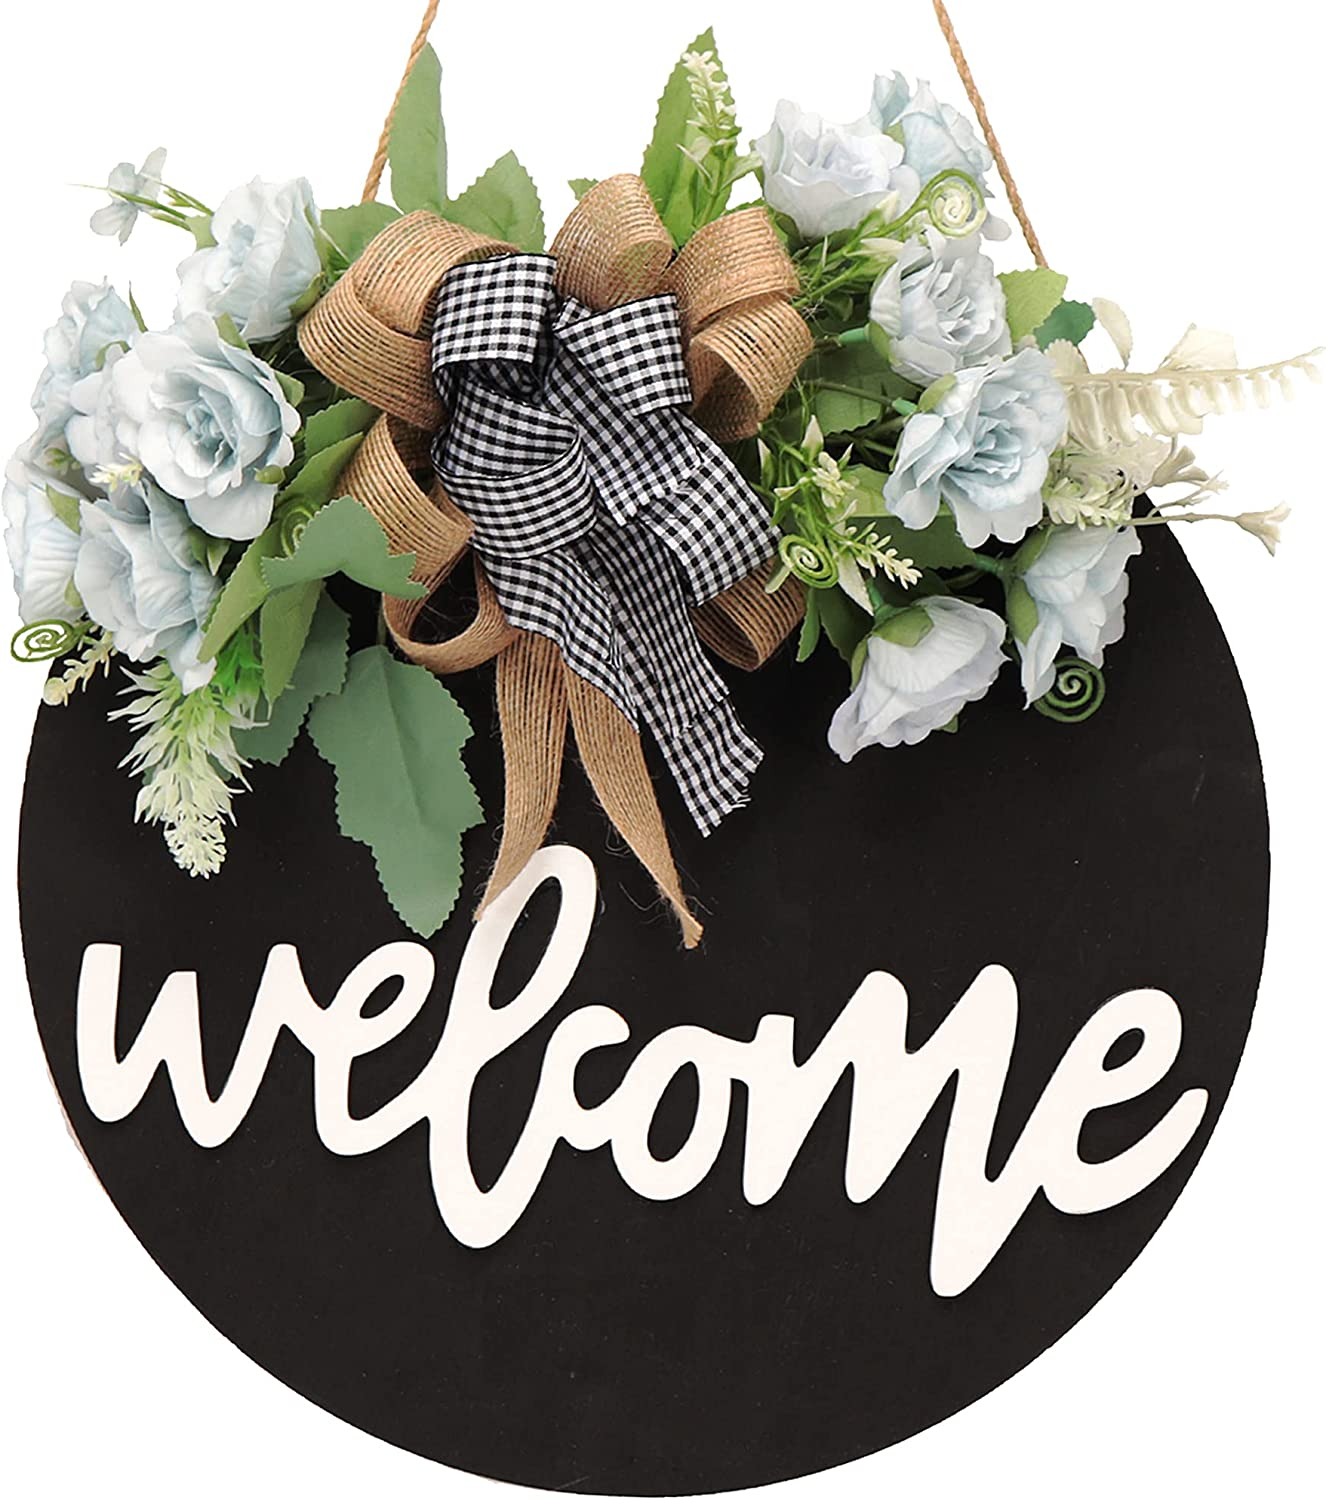 Welcome sign for front door summer wreaths for front door fall spring wreath welcome home sign door wreaths for front door outside farmhouse front porch decor outdoor decorations hanging gifts (A)